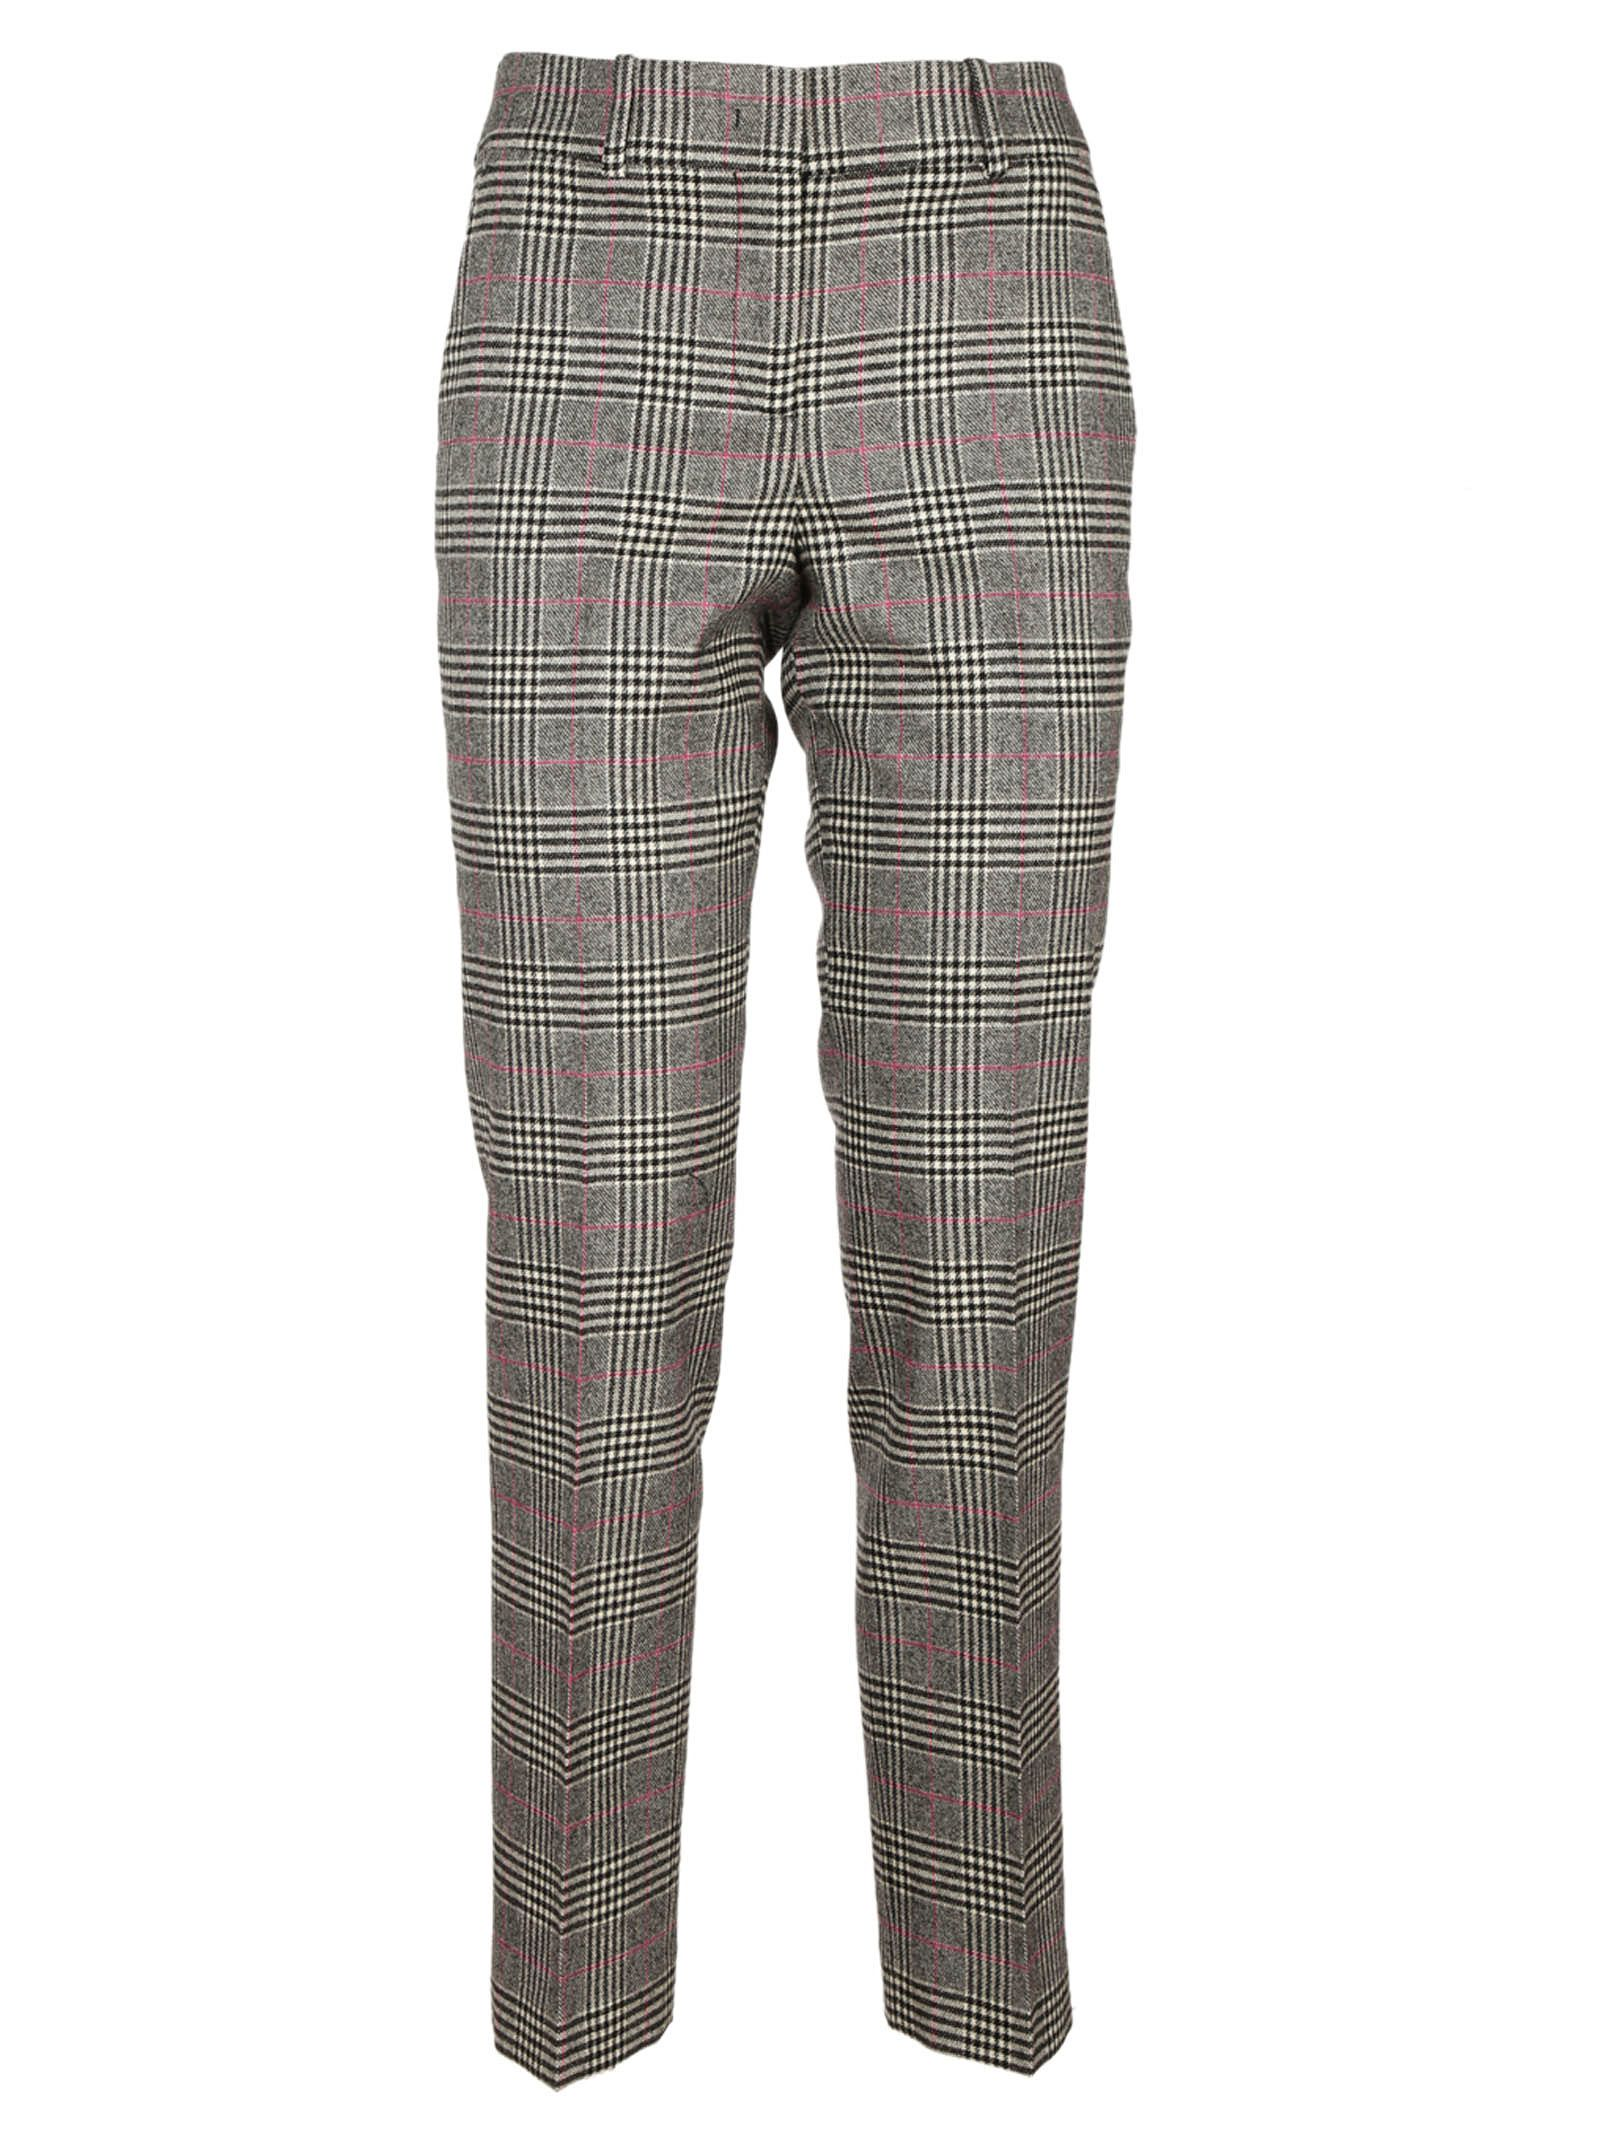 Ermanno Scervino plaid tailored trousers Outlet Get To Buy Free Shipping New Clearance Discount Clearance Amazon fiPzcrhQP